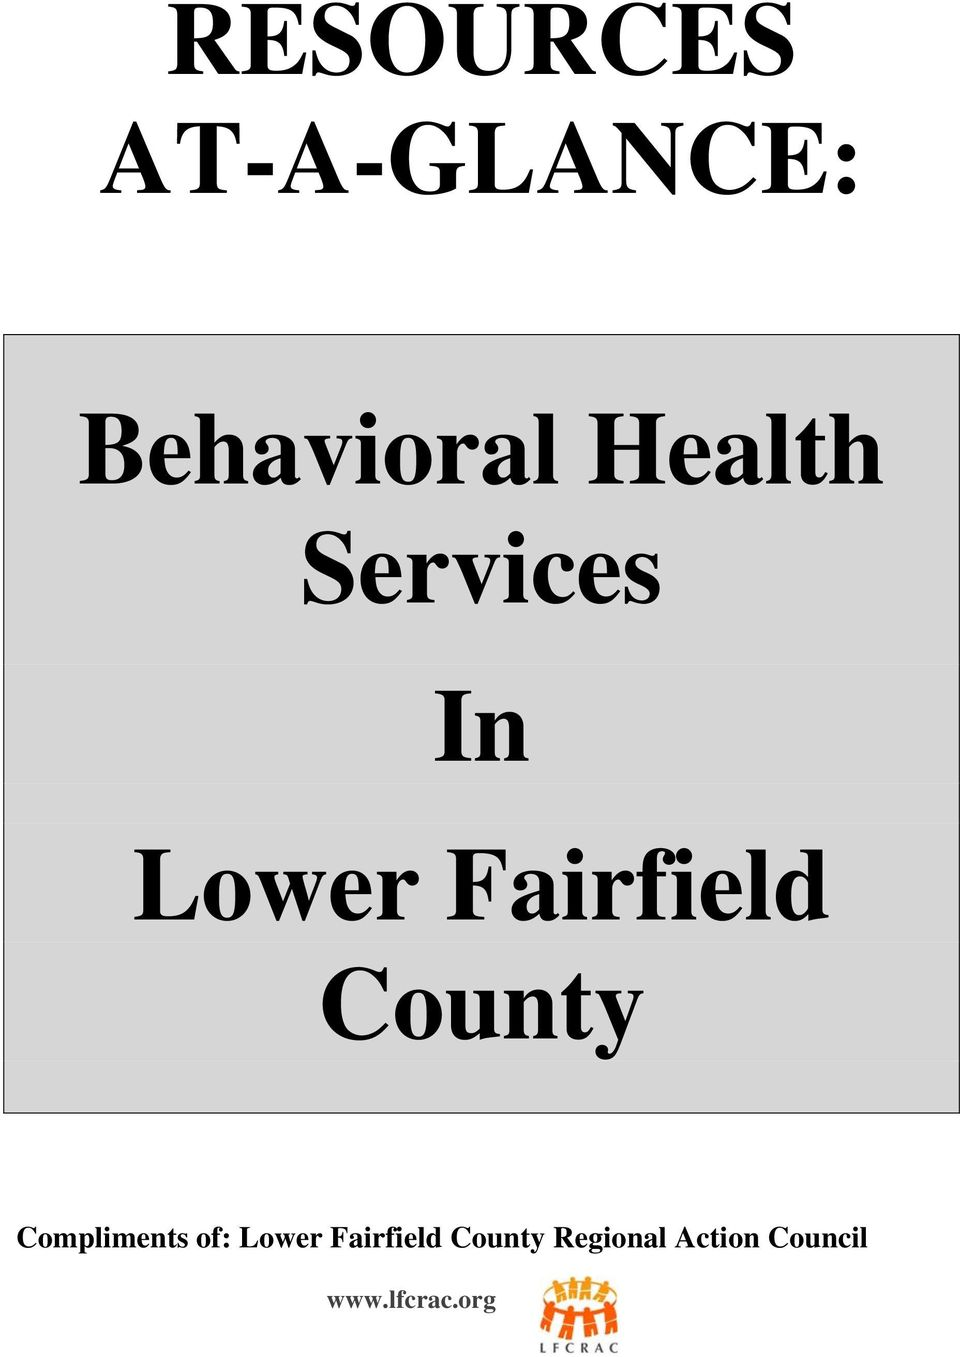 County Compliments of: Lower Fairfield